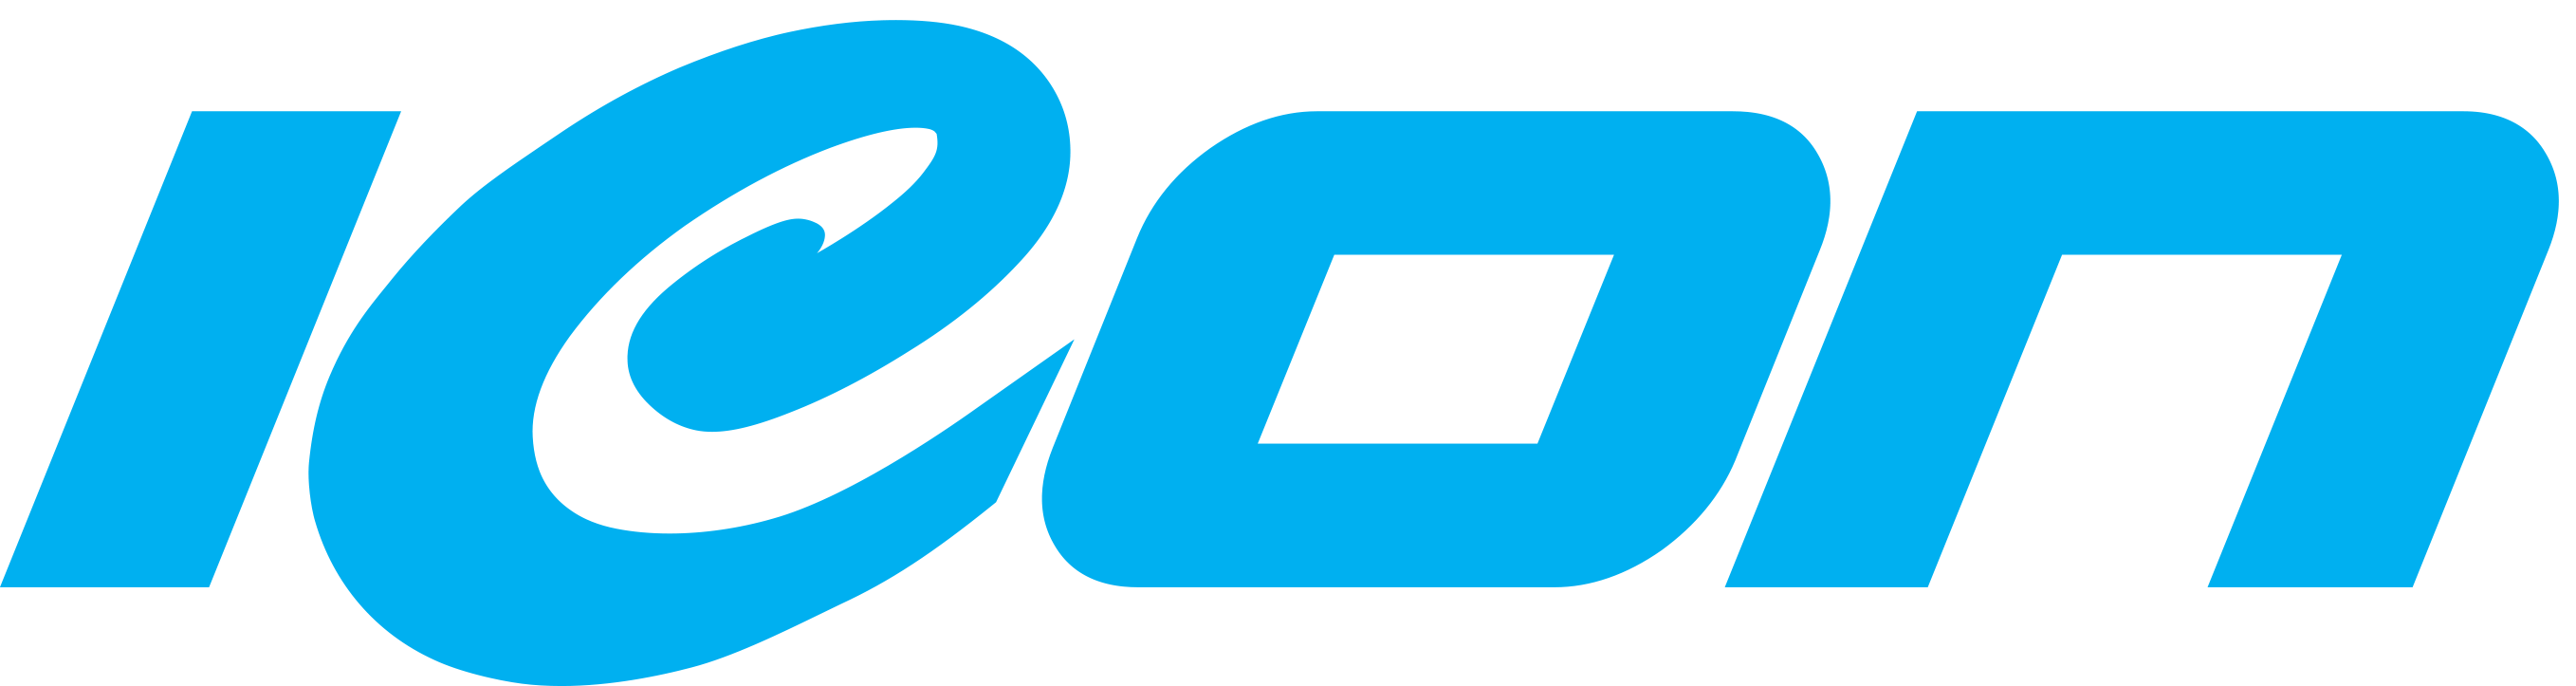 New Icon text logo - Cyan (no background).png